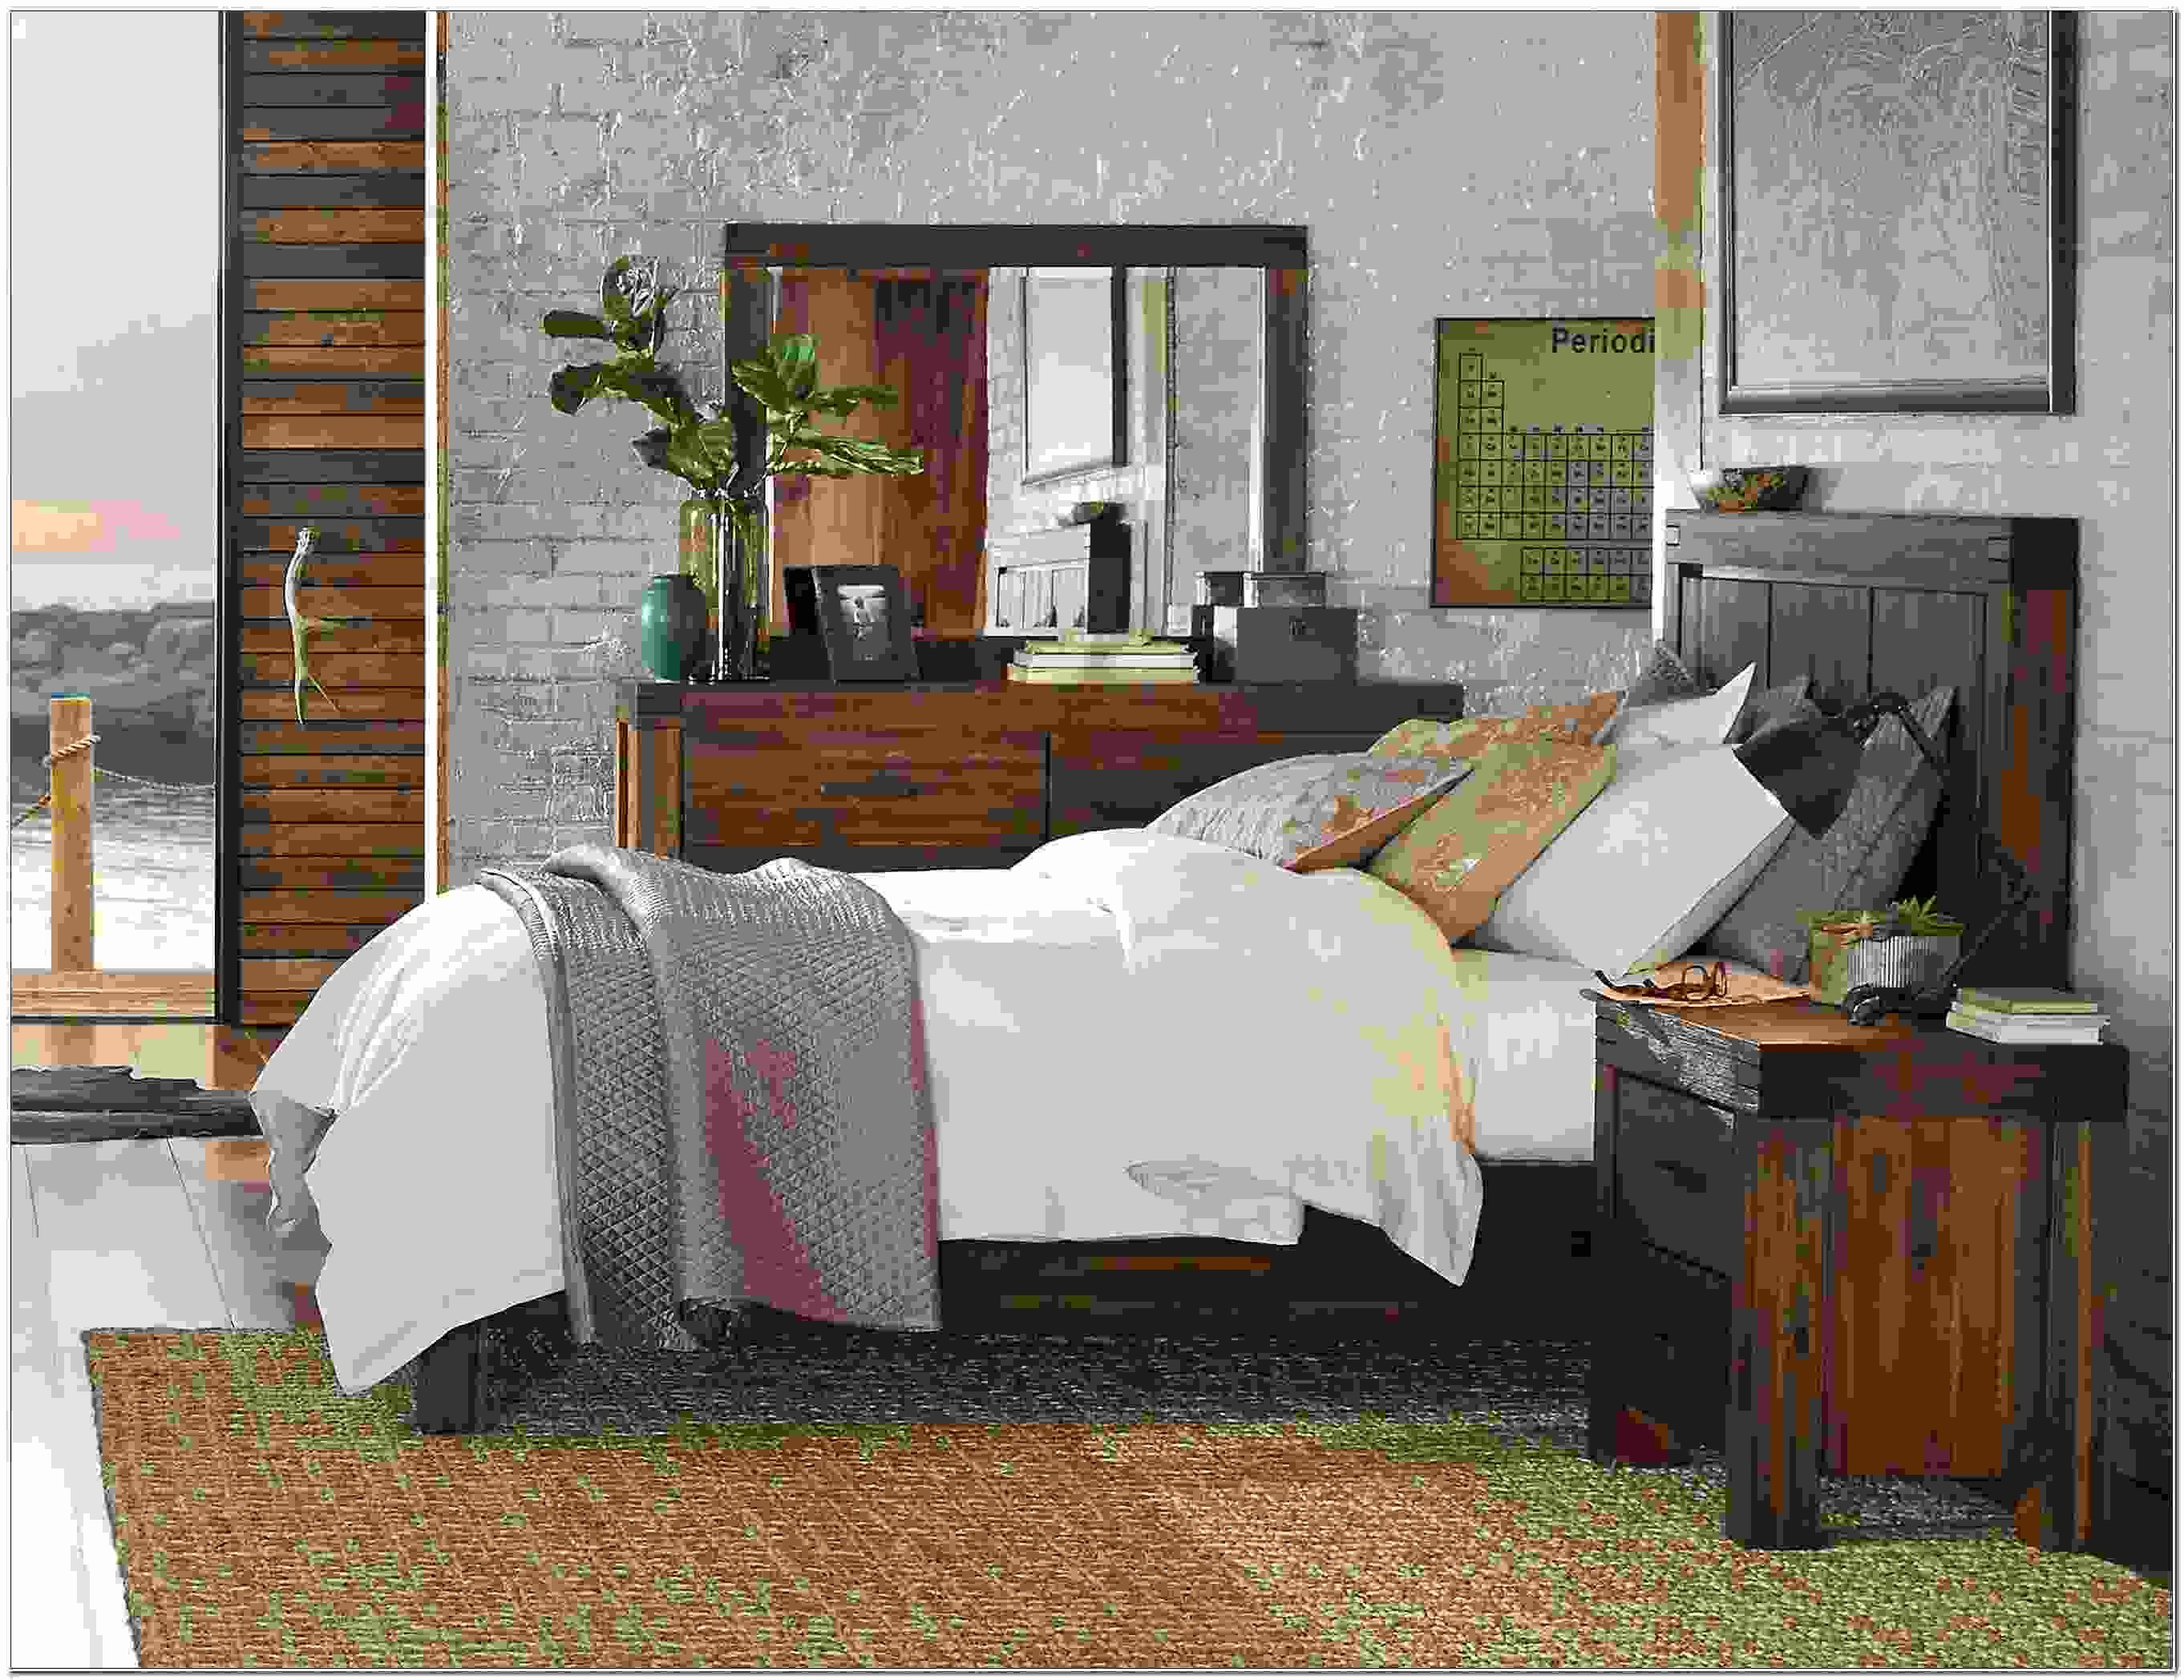 Best Craigslist Miami Bedroom Set Craigslist Miami Bedroom With Pictures